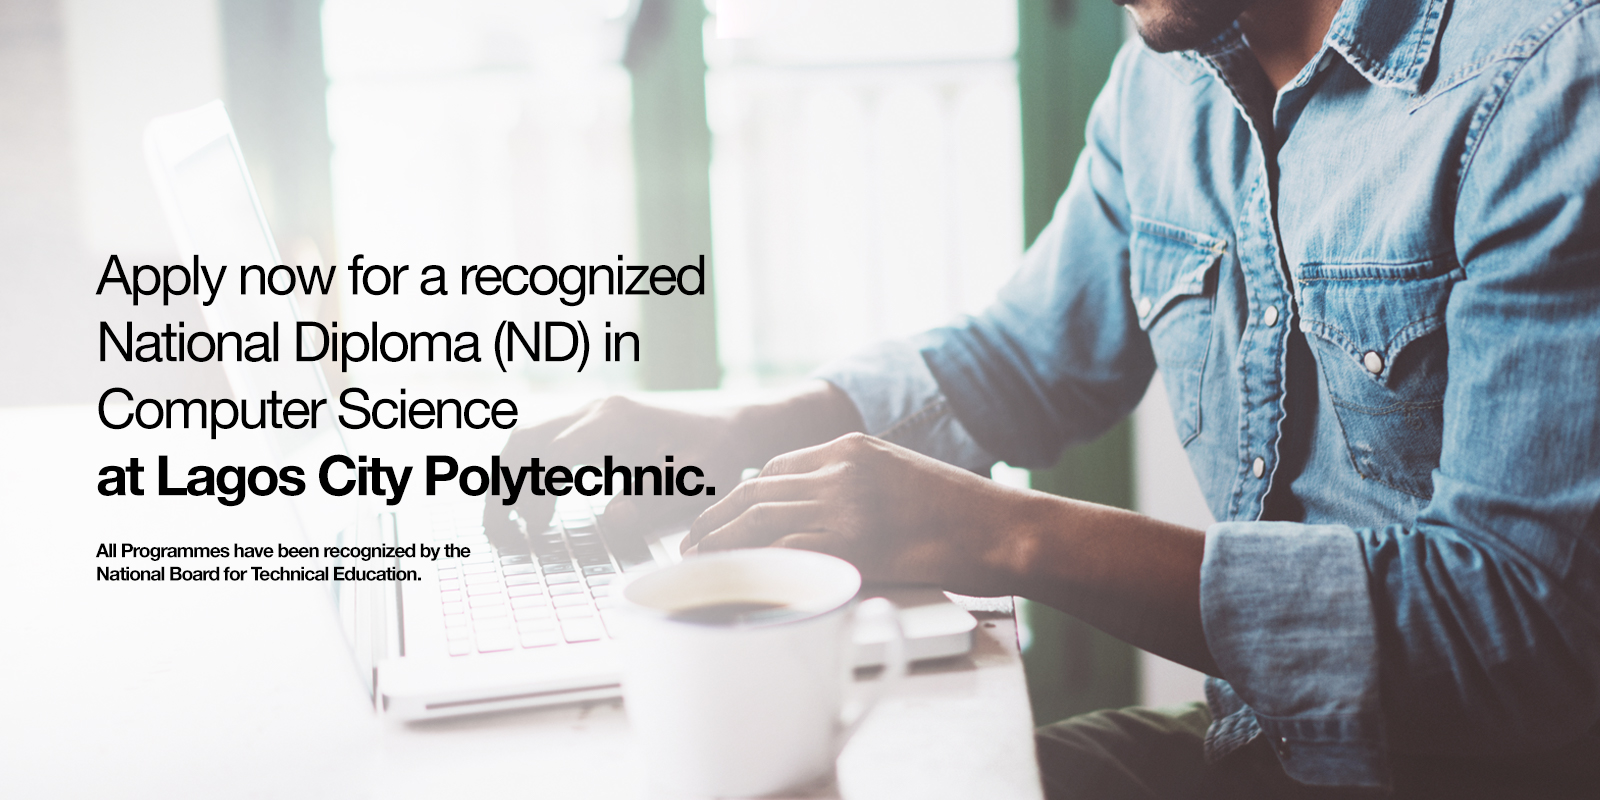 ADMISSION REQUIREMENTS INTO POLYTECHNICS IN NIGERIA